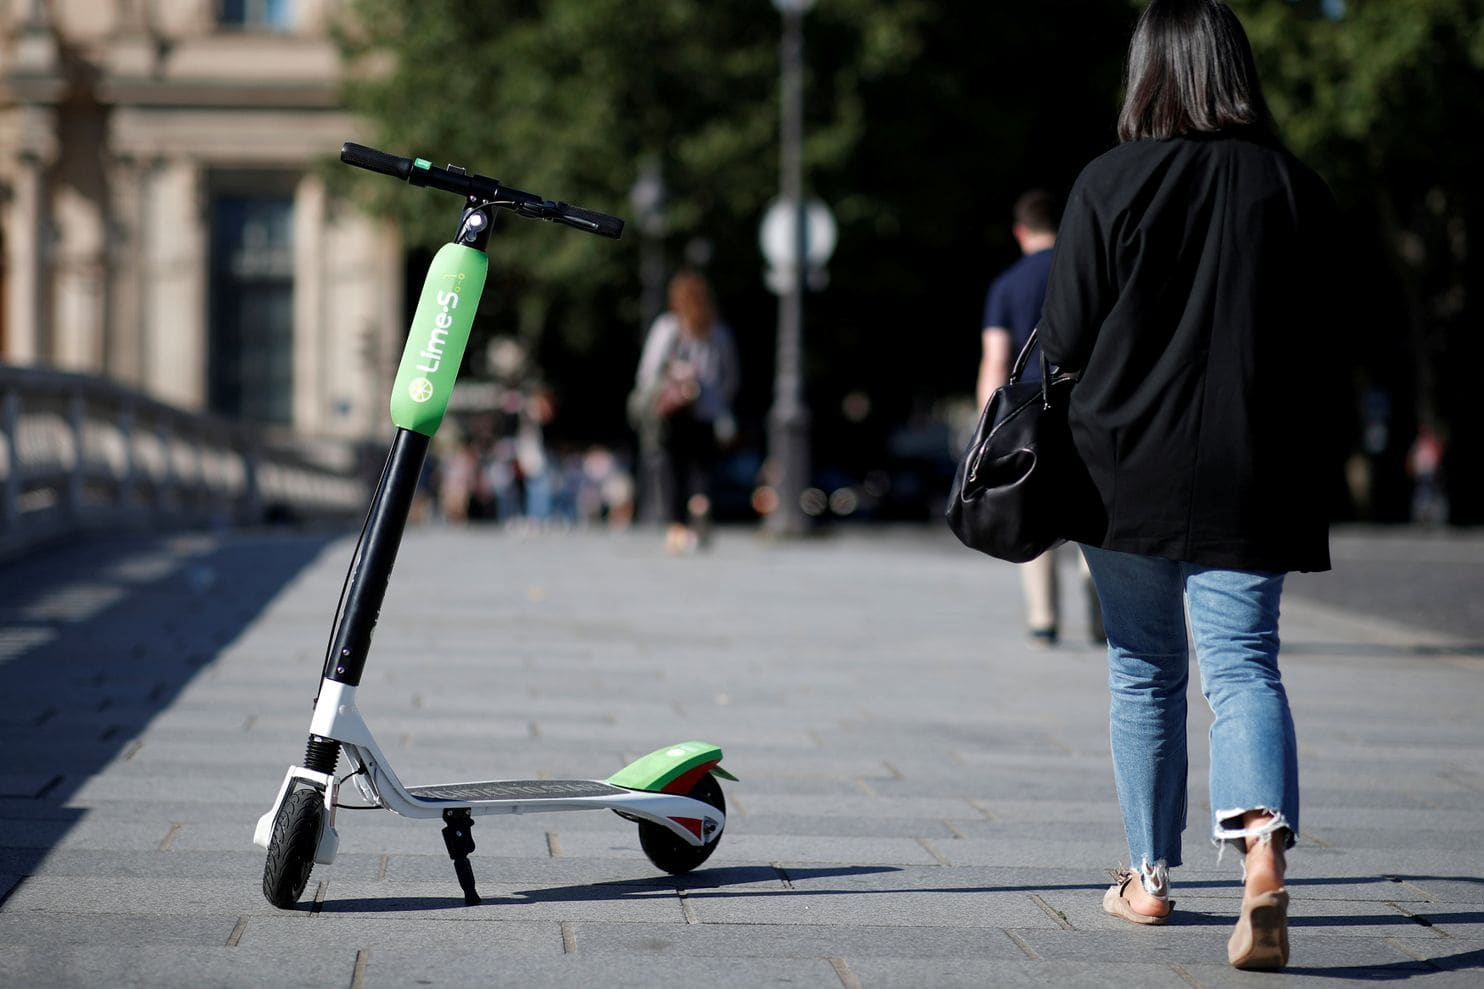 Lime scooters in Australia hacked to deliver lewd and racist comments